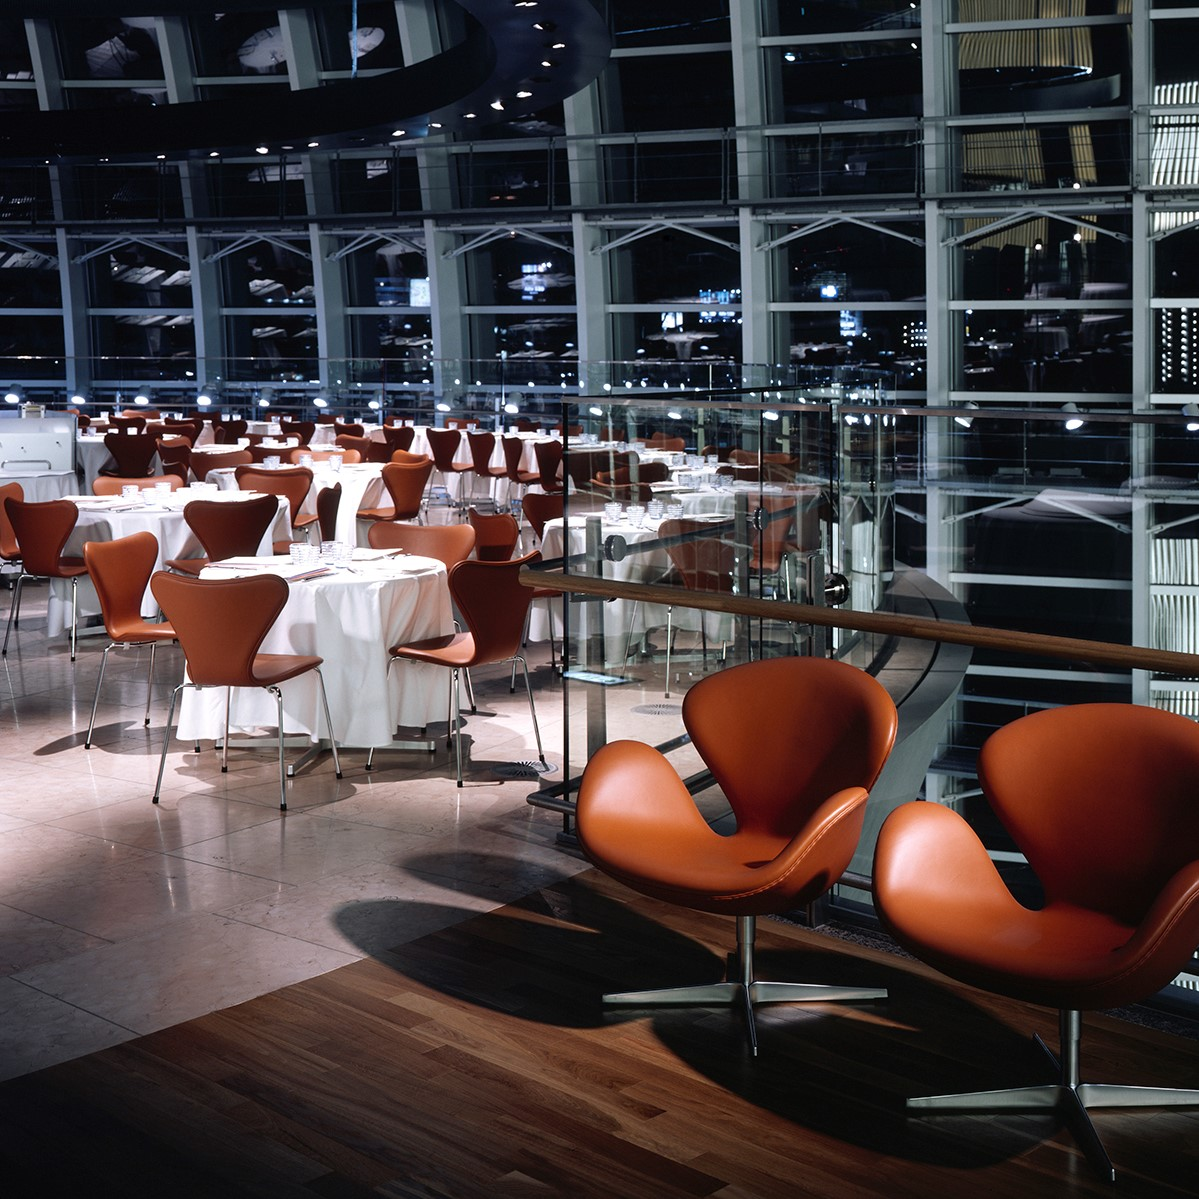 Tower restaurant inside the National Art Center in Tokyo set up with eries 7™ chairs and Swan™ chairs by Arne Jacobsen